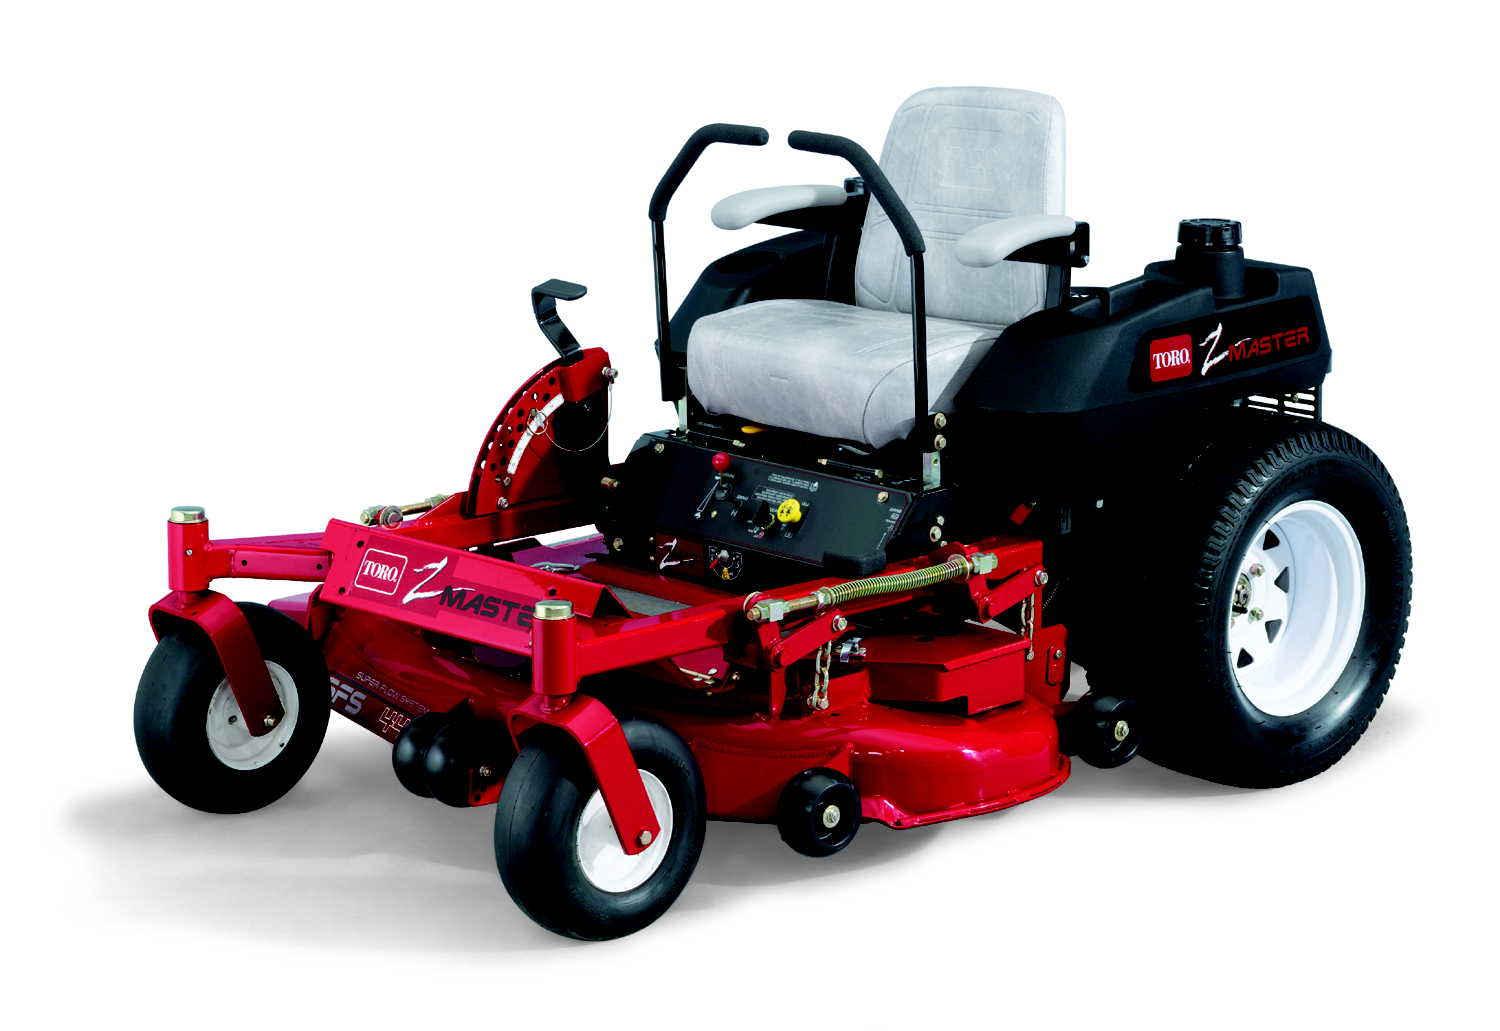 Lawn Mower for Minneapolis Landscaping